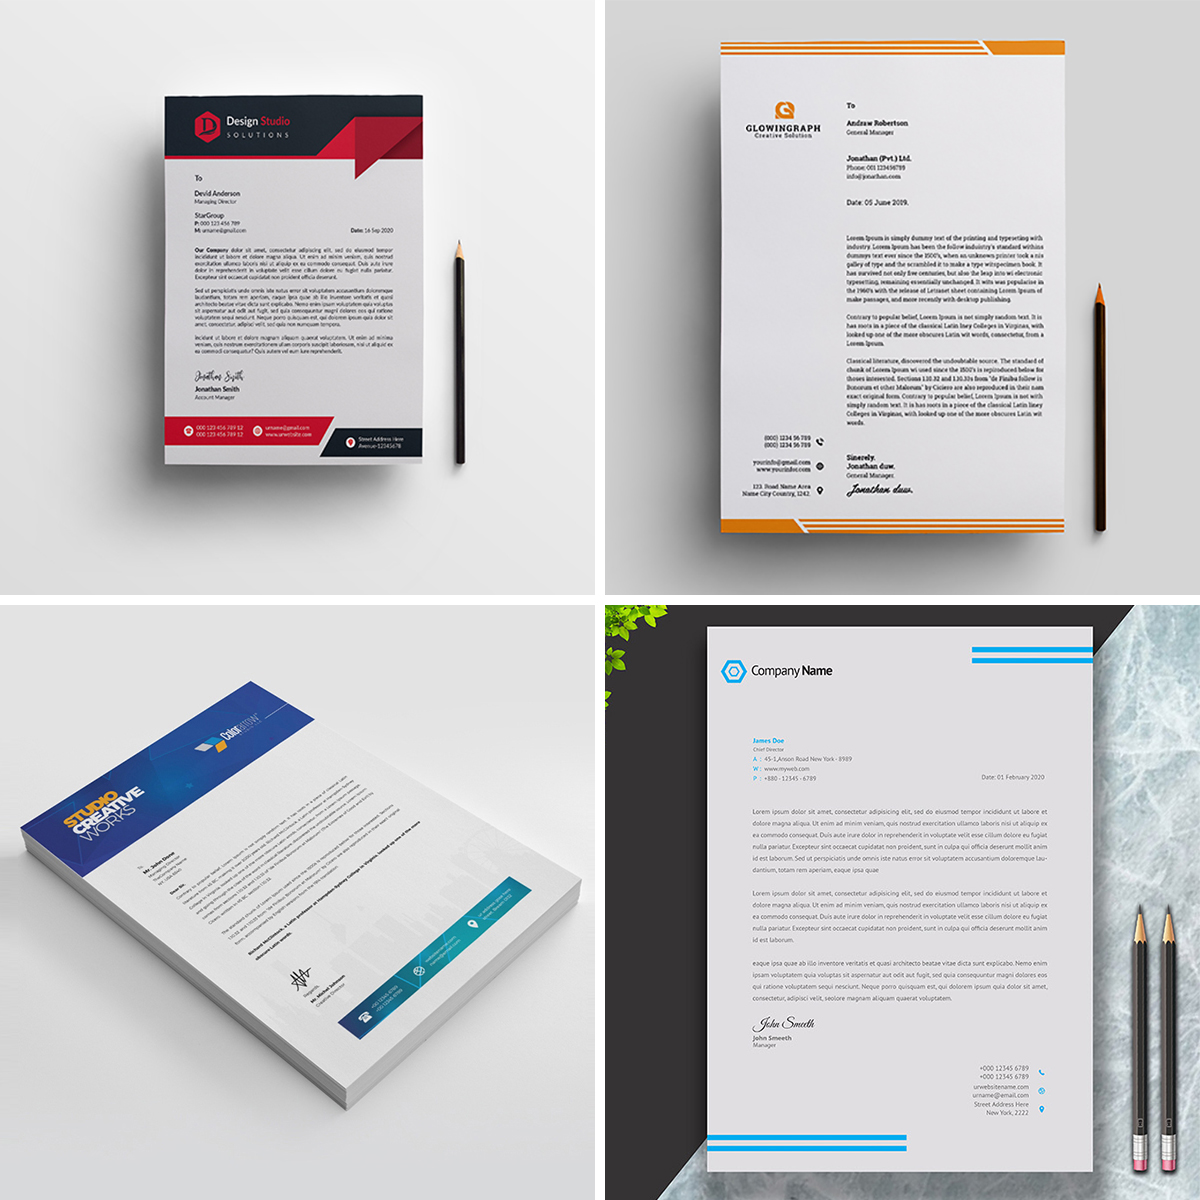 Royal Print Templates Bundle with 160 Items - Only $19 - letterheads